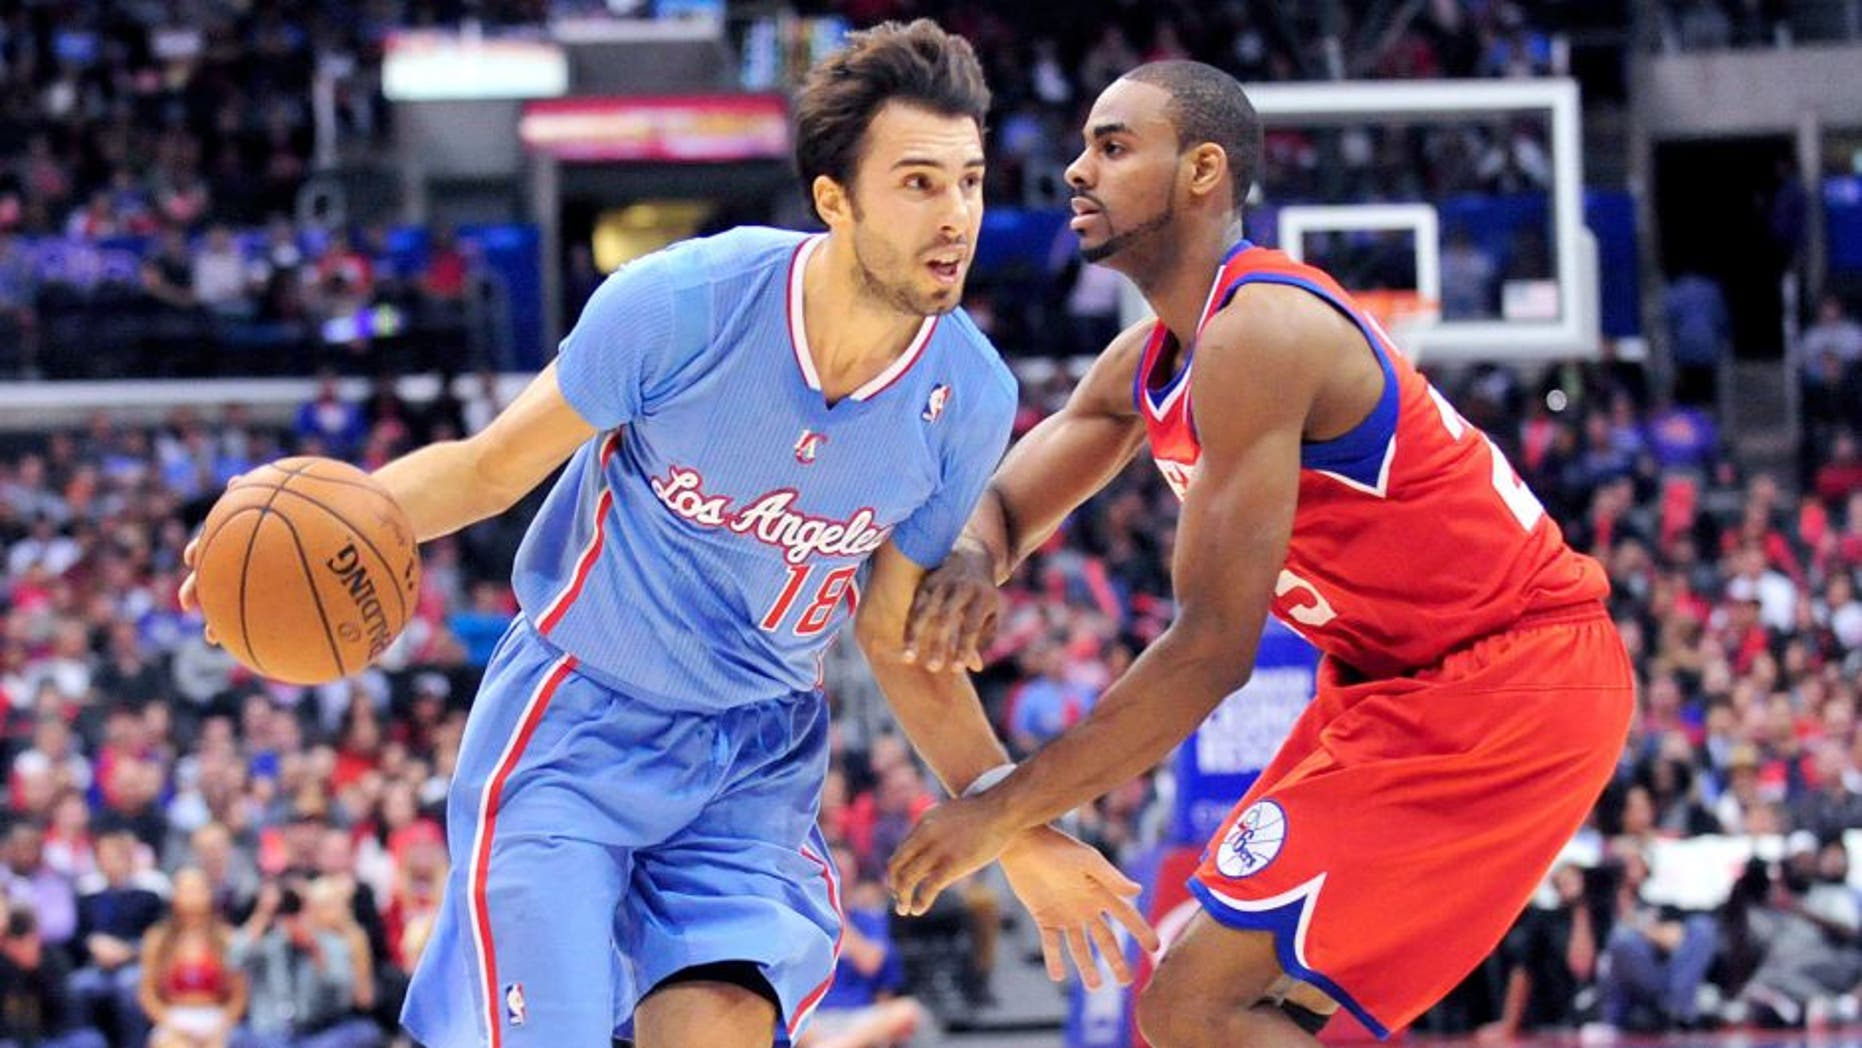 February 9, 2014; Los Angeles, CA, USA; Los Angeles Clippers shooting guard Sasha Vujacic (18) moves the ball against Philadelphia 76ers shooting guard Elliot Williams (25) during the second half at Staples Center. Mandatory Credit: Gary A. Vasquez-USA TODAY Sports